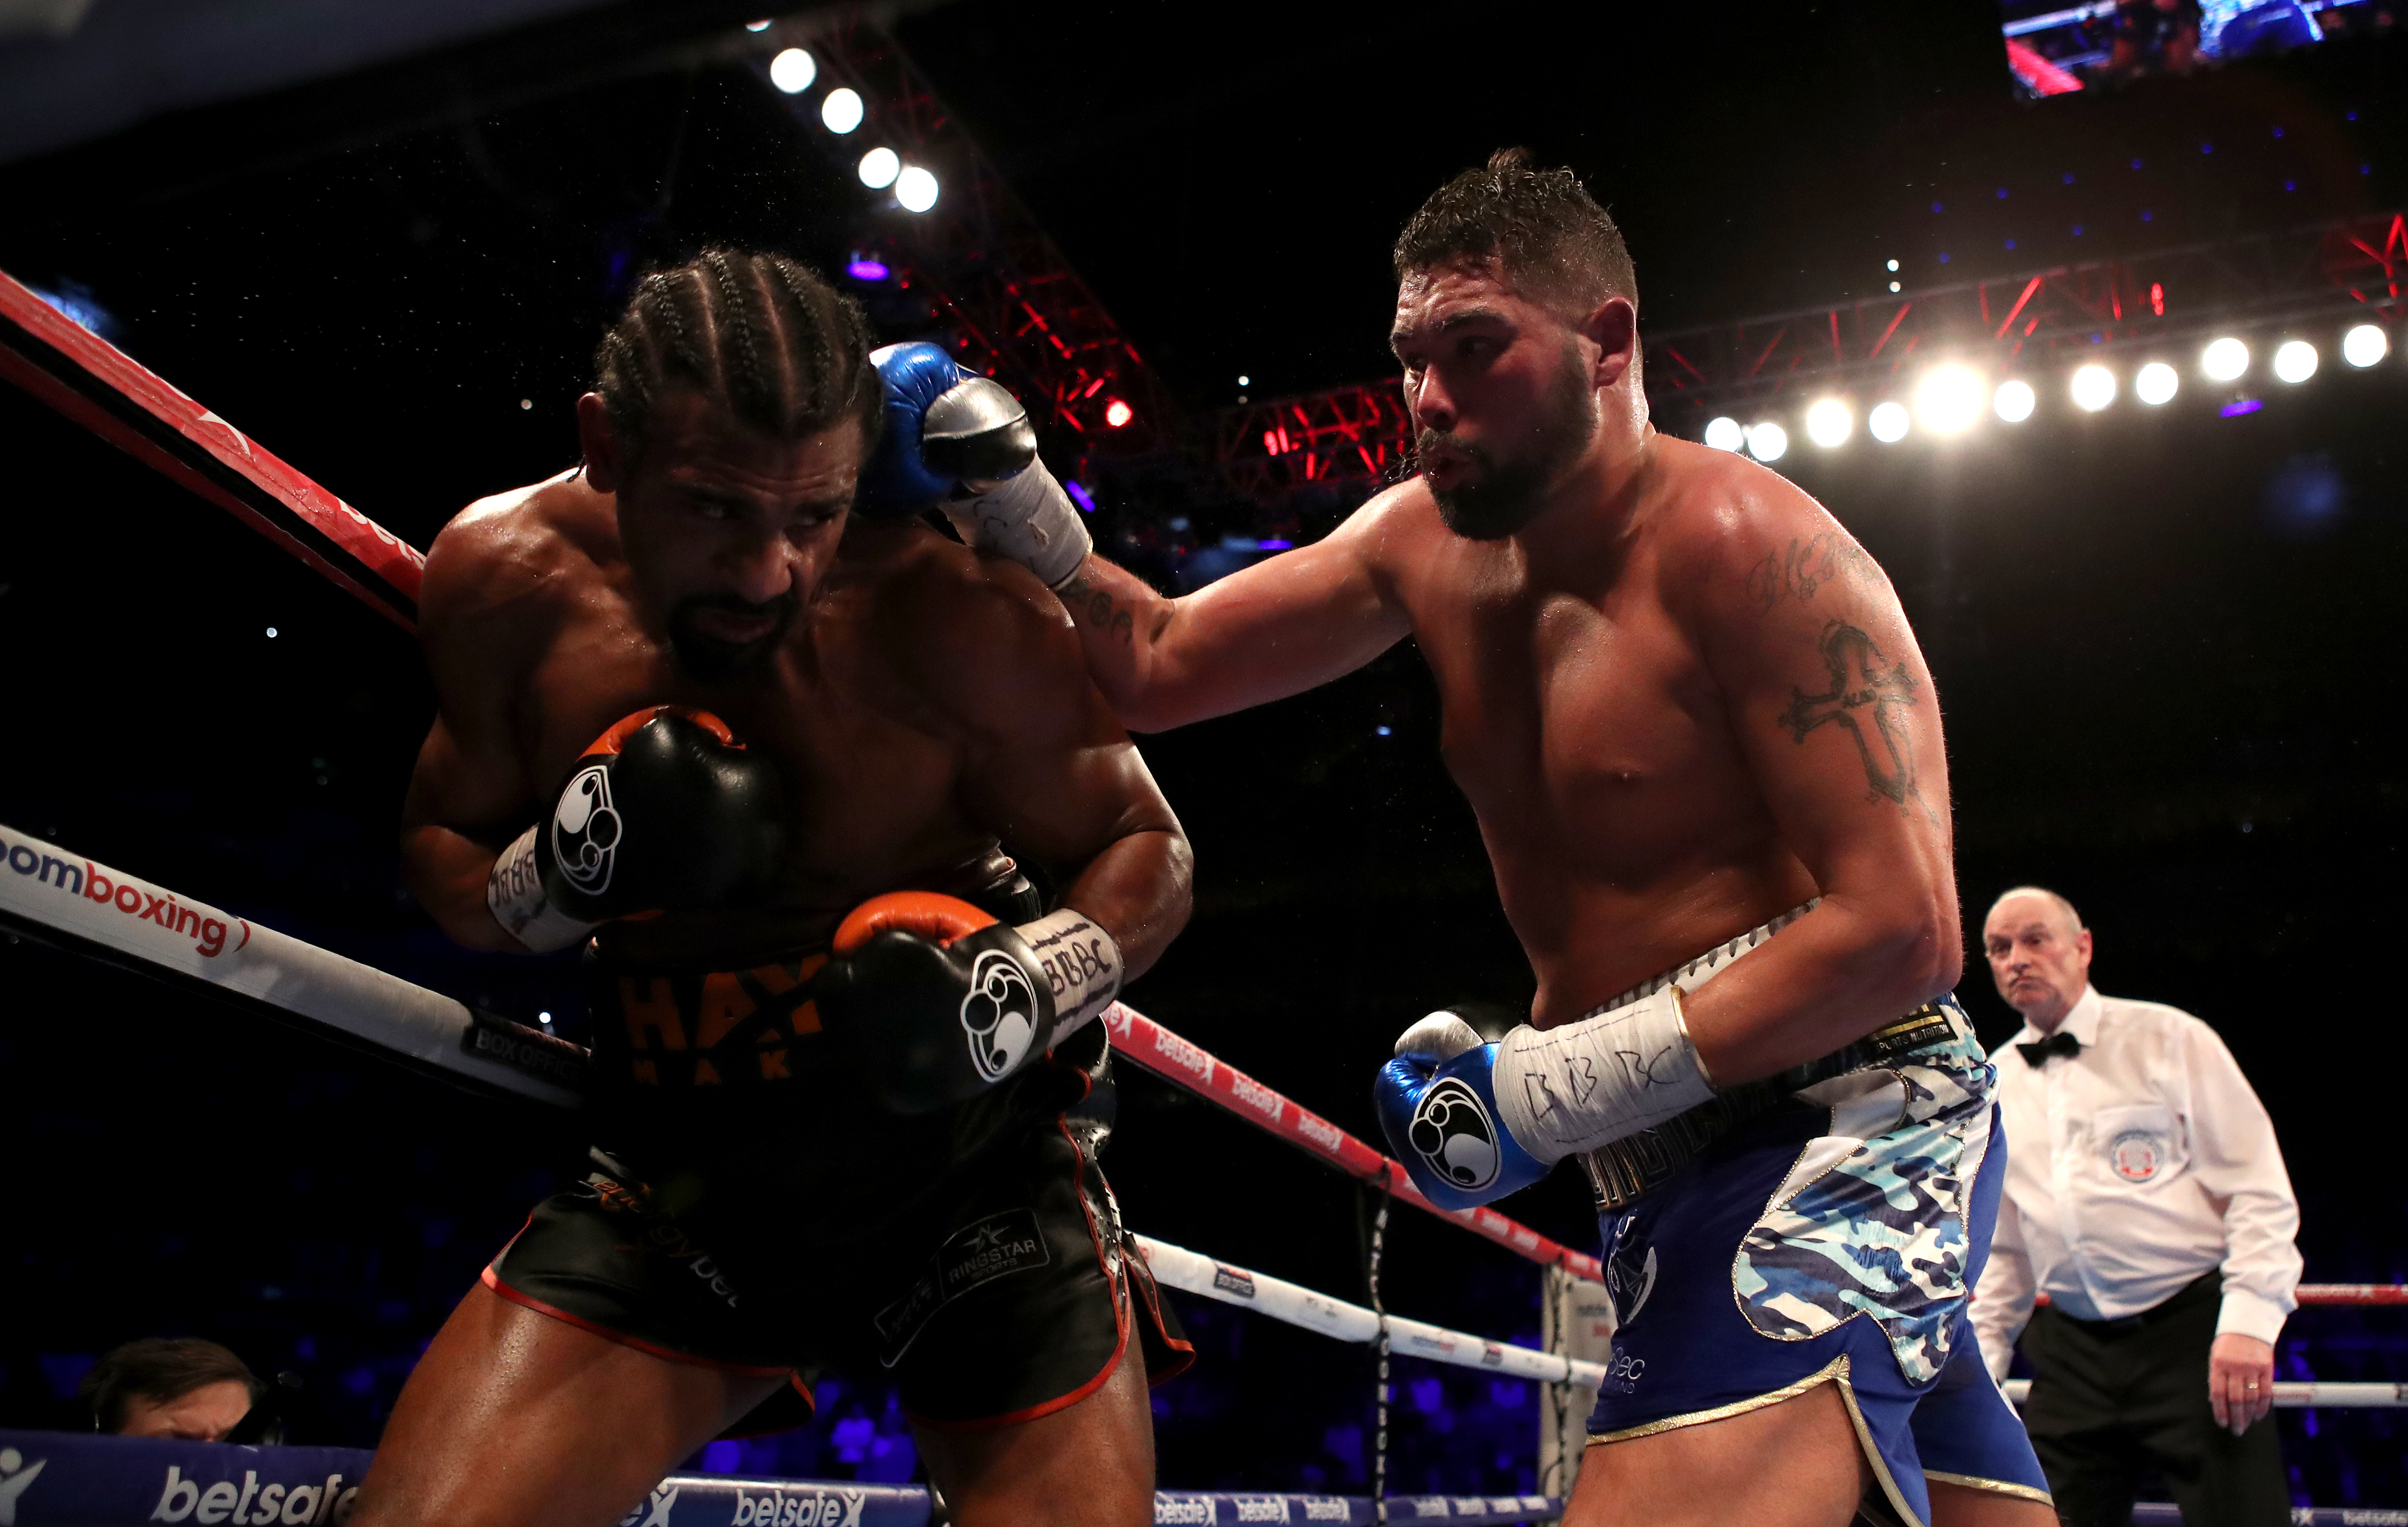 David Haye (left) takes on Tony Bellew during the heavyweight contest at The O2